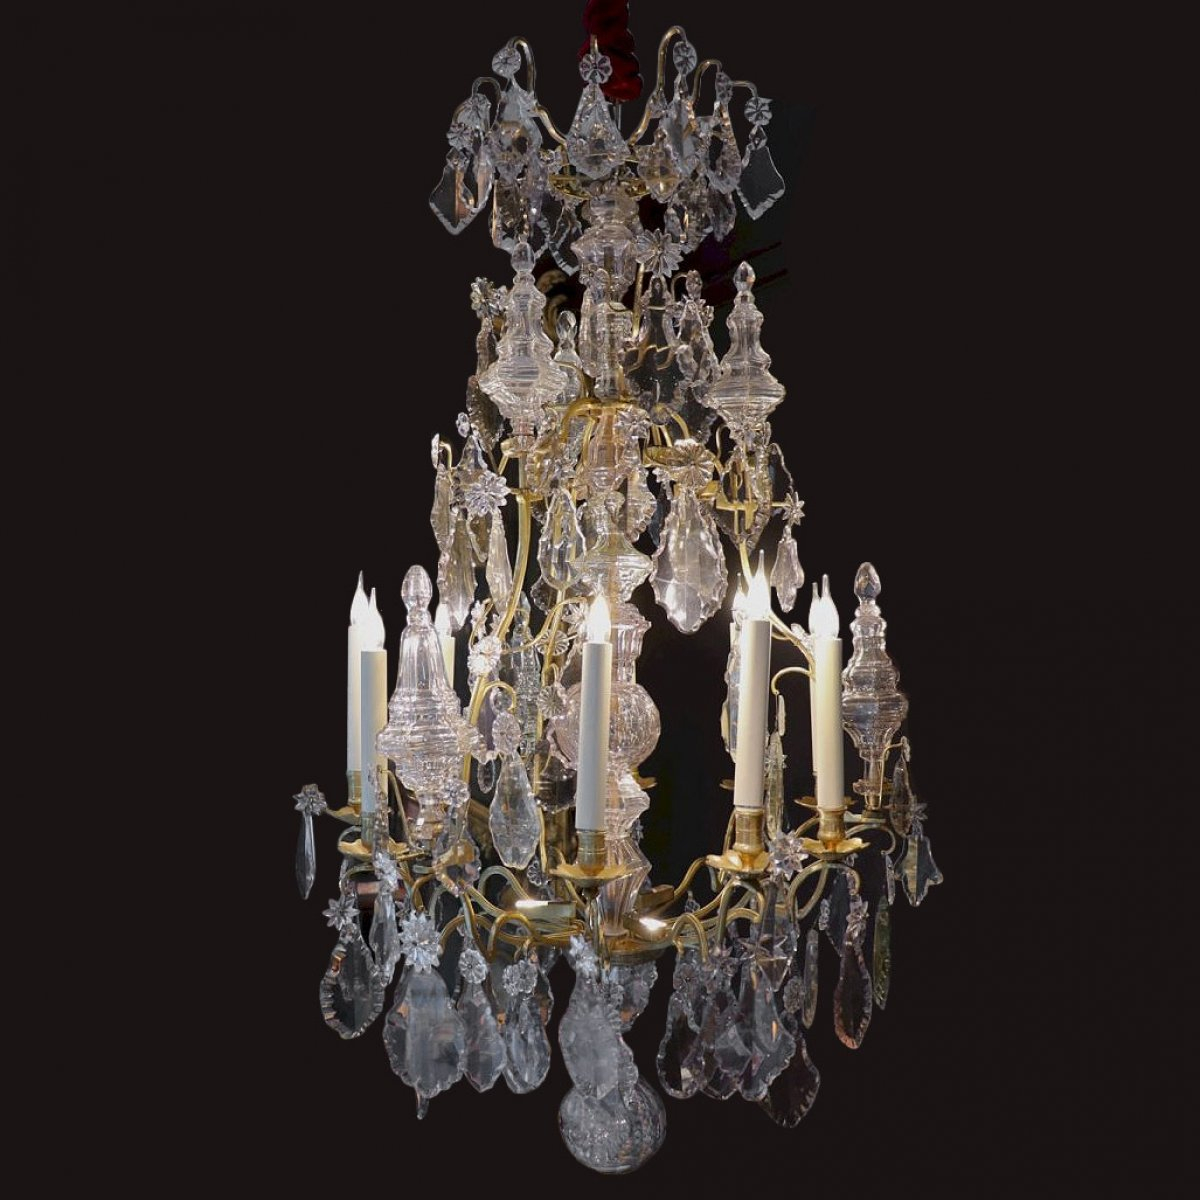 lustre pampilles poque louis xv xviiie si cle. Black Bedroom Furniture Sets. Home Design Ideas